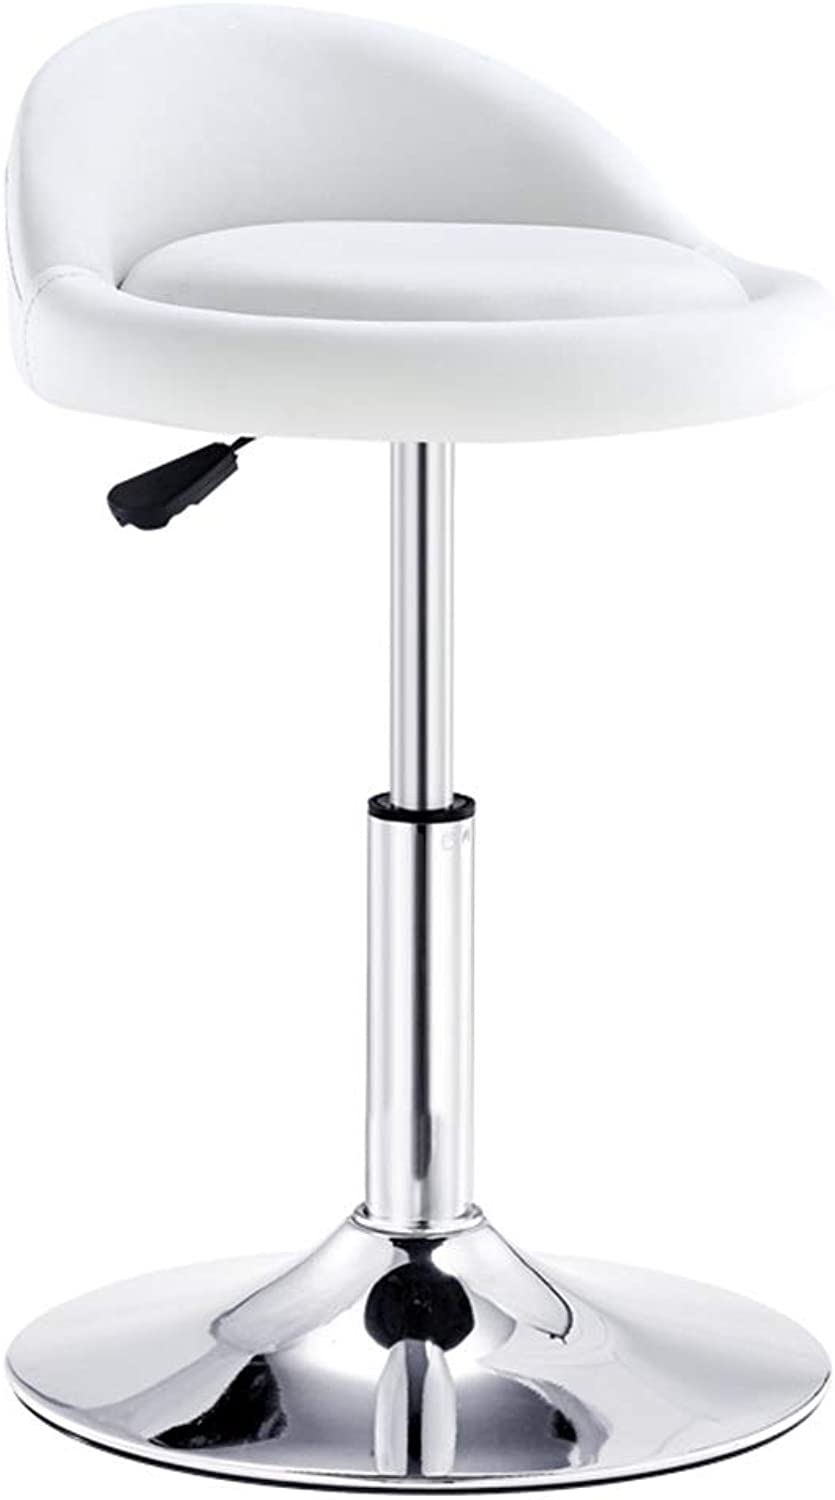 Chair Bar Stool Modern Bar Chair Lifting Swivel Chair Backrest Chair Home High Stool Assembly Stool Furniture Gift (color   White, Size   37  37  40CM)